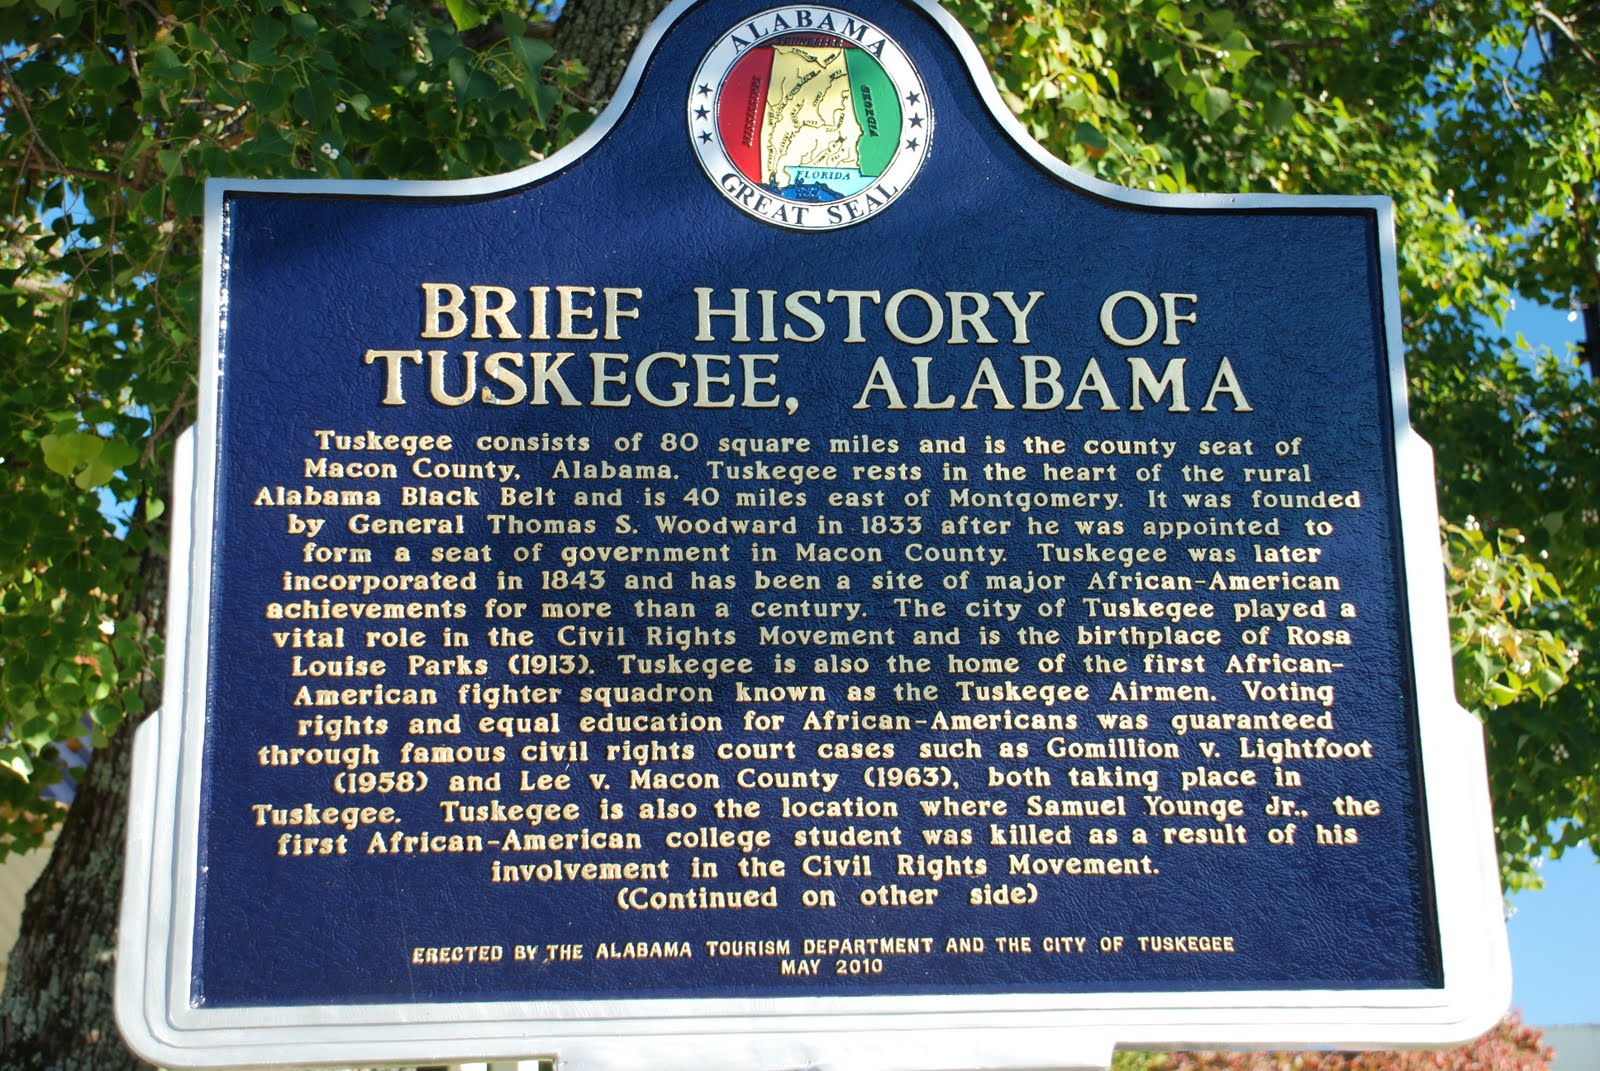 PATRON + Historic news article from 1877 recalls the beginning of Tuskegee, Alabama